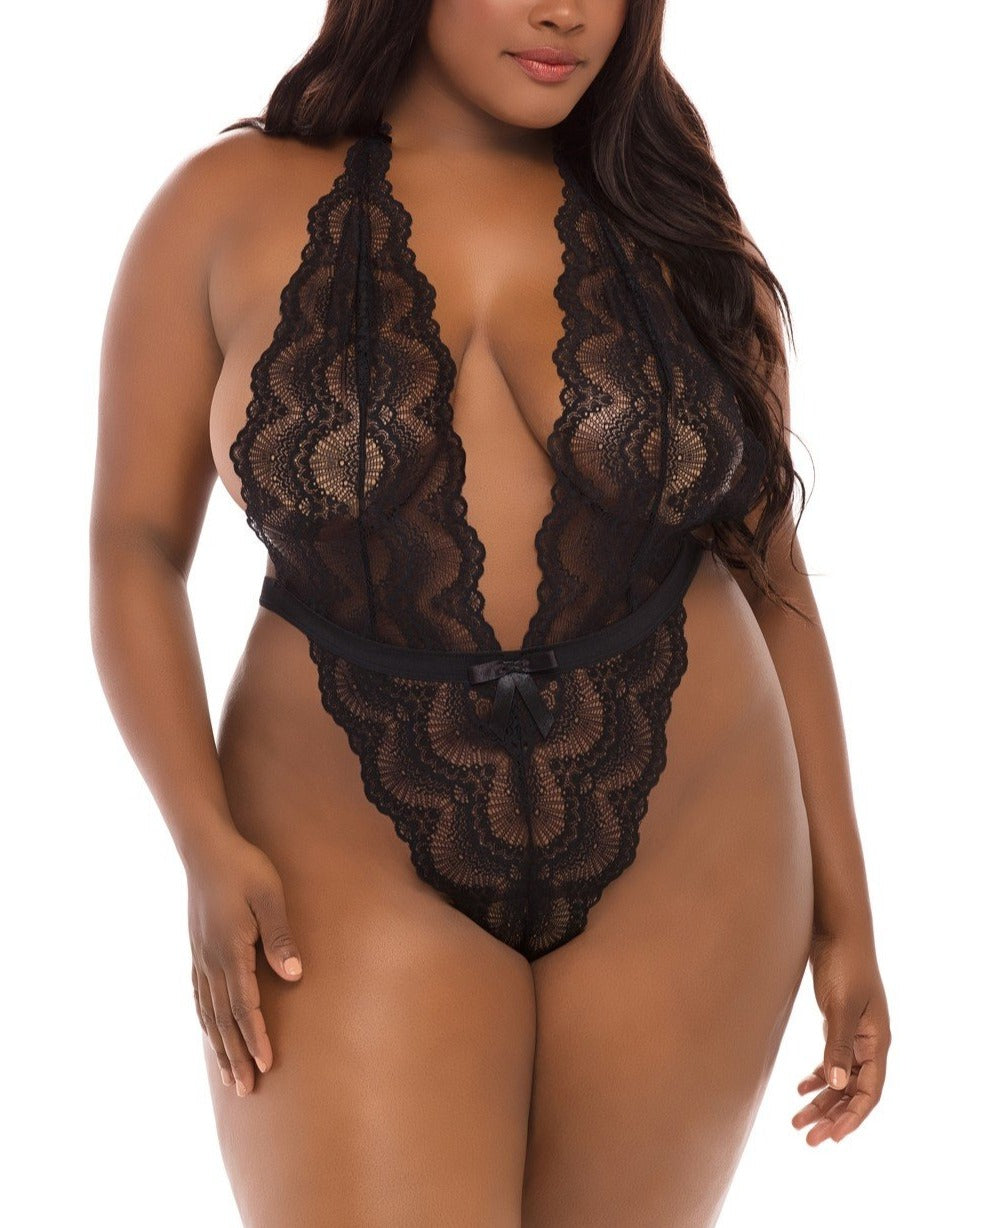 Alessa Lace Teddy - Made For Curves